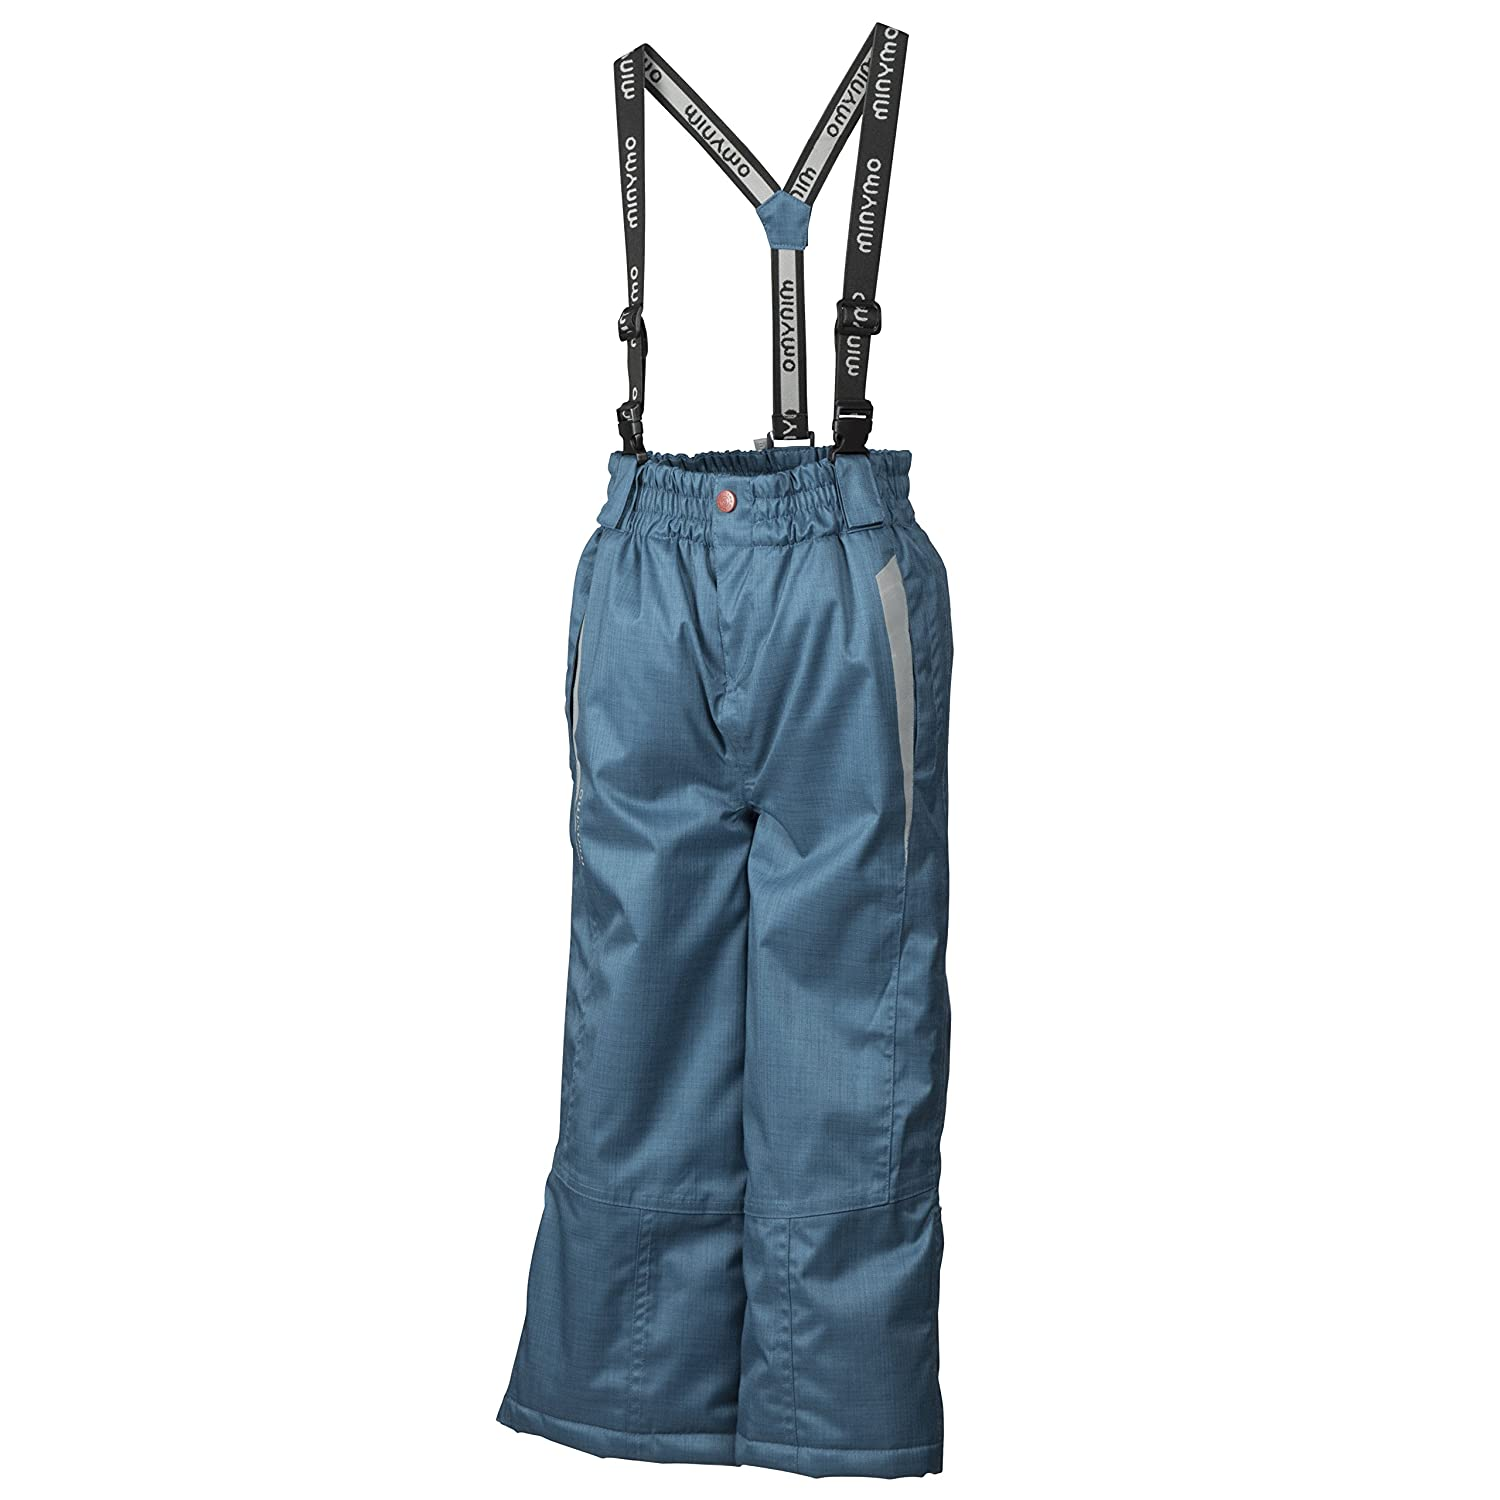 Minymo Boy Outdoor Schneehose Herrying Bing 28 Legion Blue online kaufen